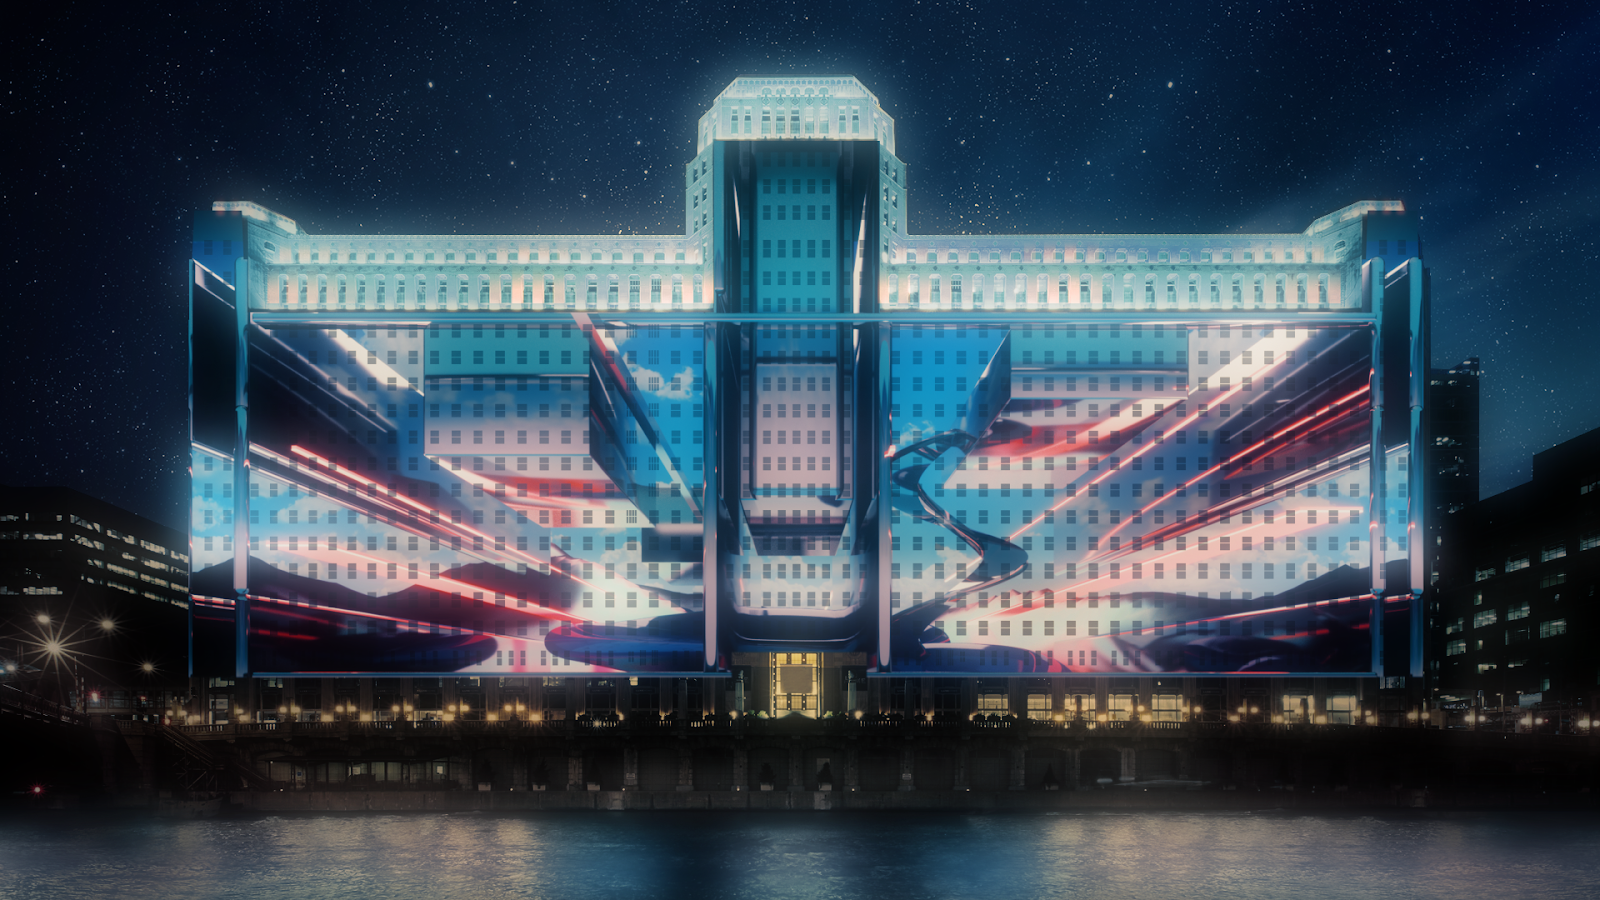 Obscura Behind Large Scale Projection Mapping in Chicago « PLSN on digital glasses, digital glass, digital compositing, digital illustration, digital drawing, digital technology, digital light, digital advertising, digital media, digital energy mapping, digital code, digital rendering,